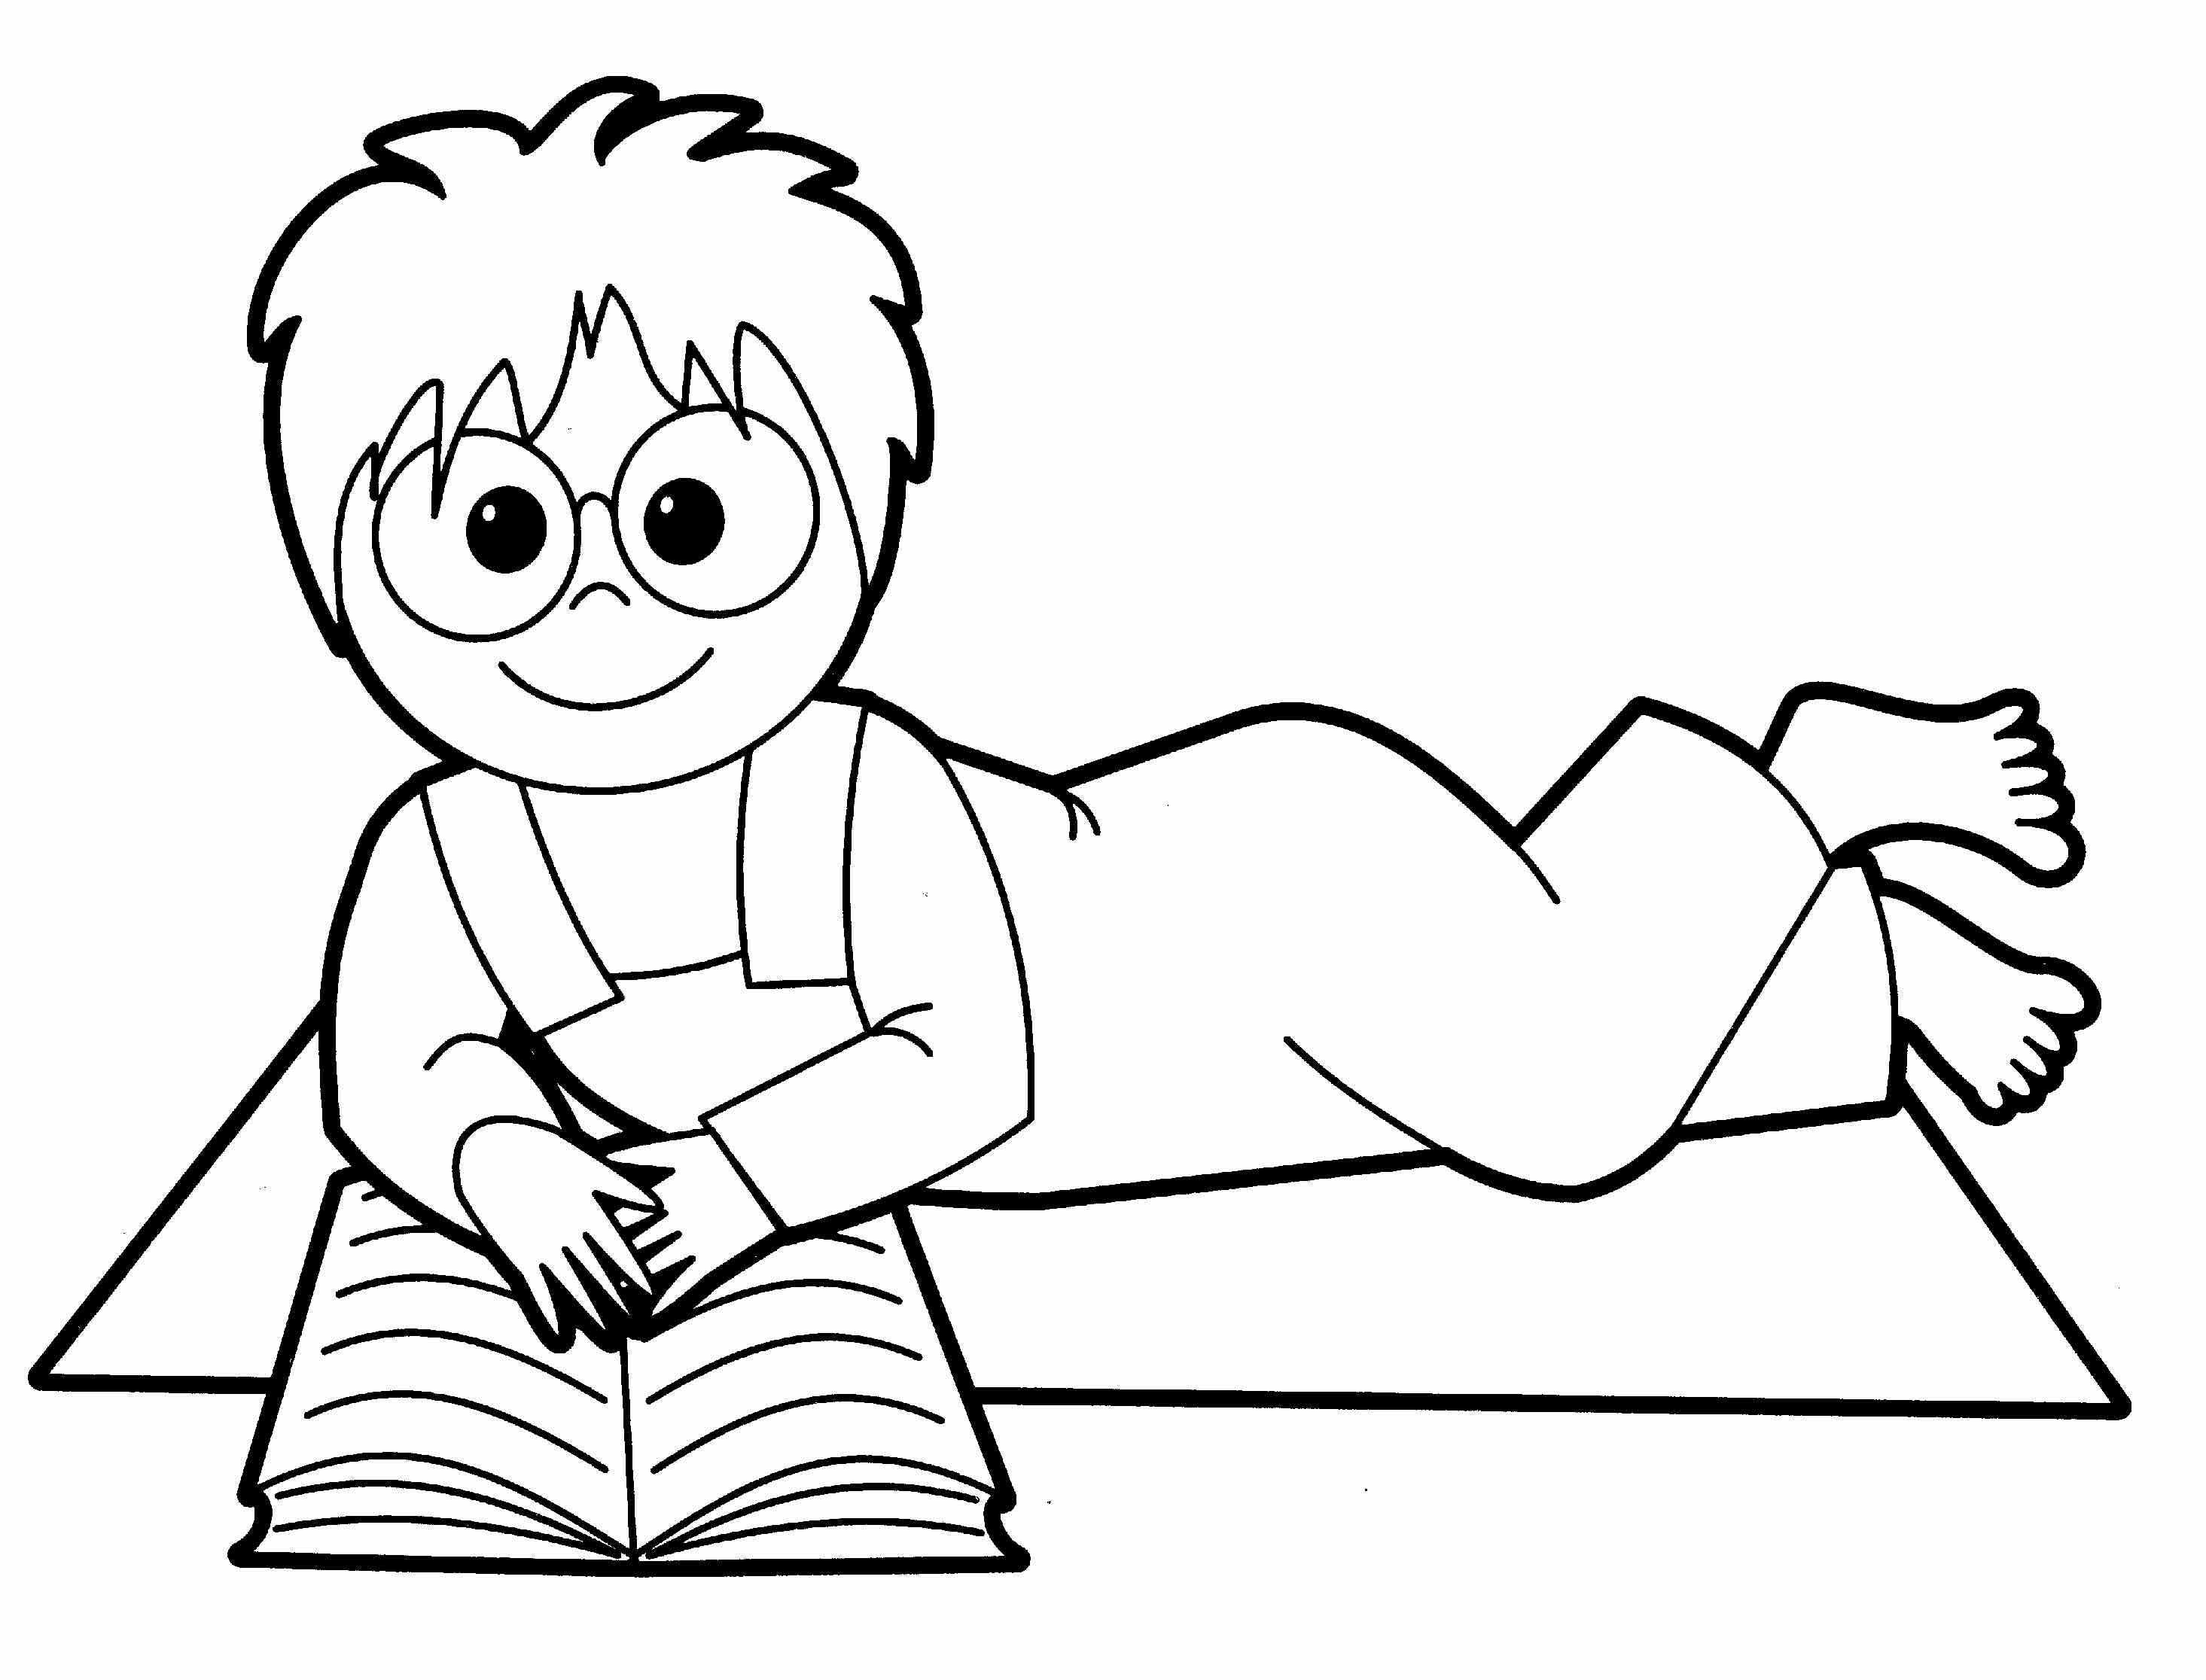 Uncategorized Coloring People world people free coloring pages page printable sunday school on masivy sheets of people